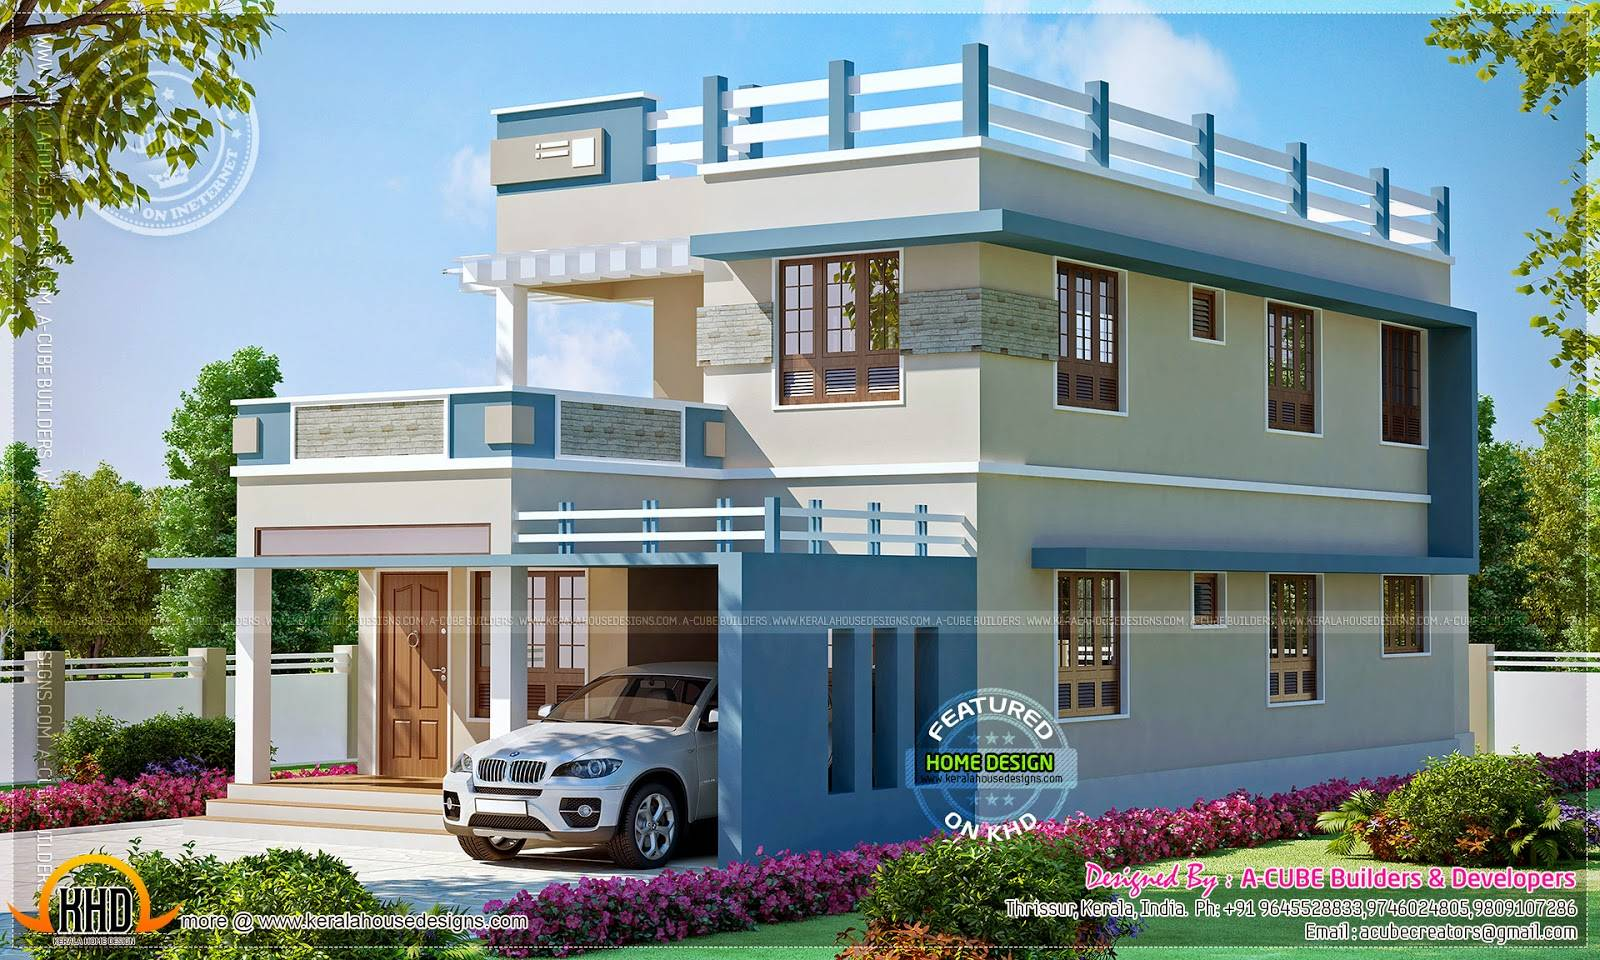 Homes Designs Modern Big Homes Designs Exterior Views New Homes Designs Interior Design Ideas